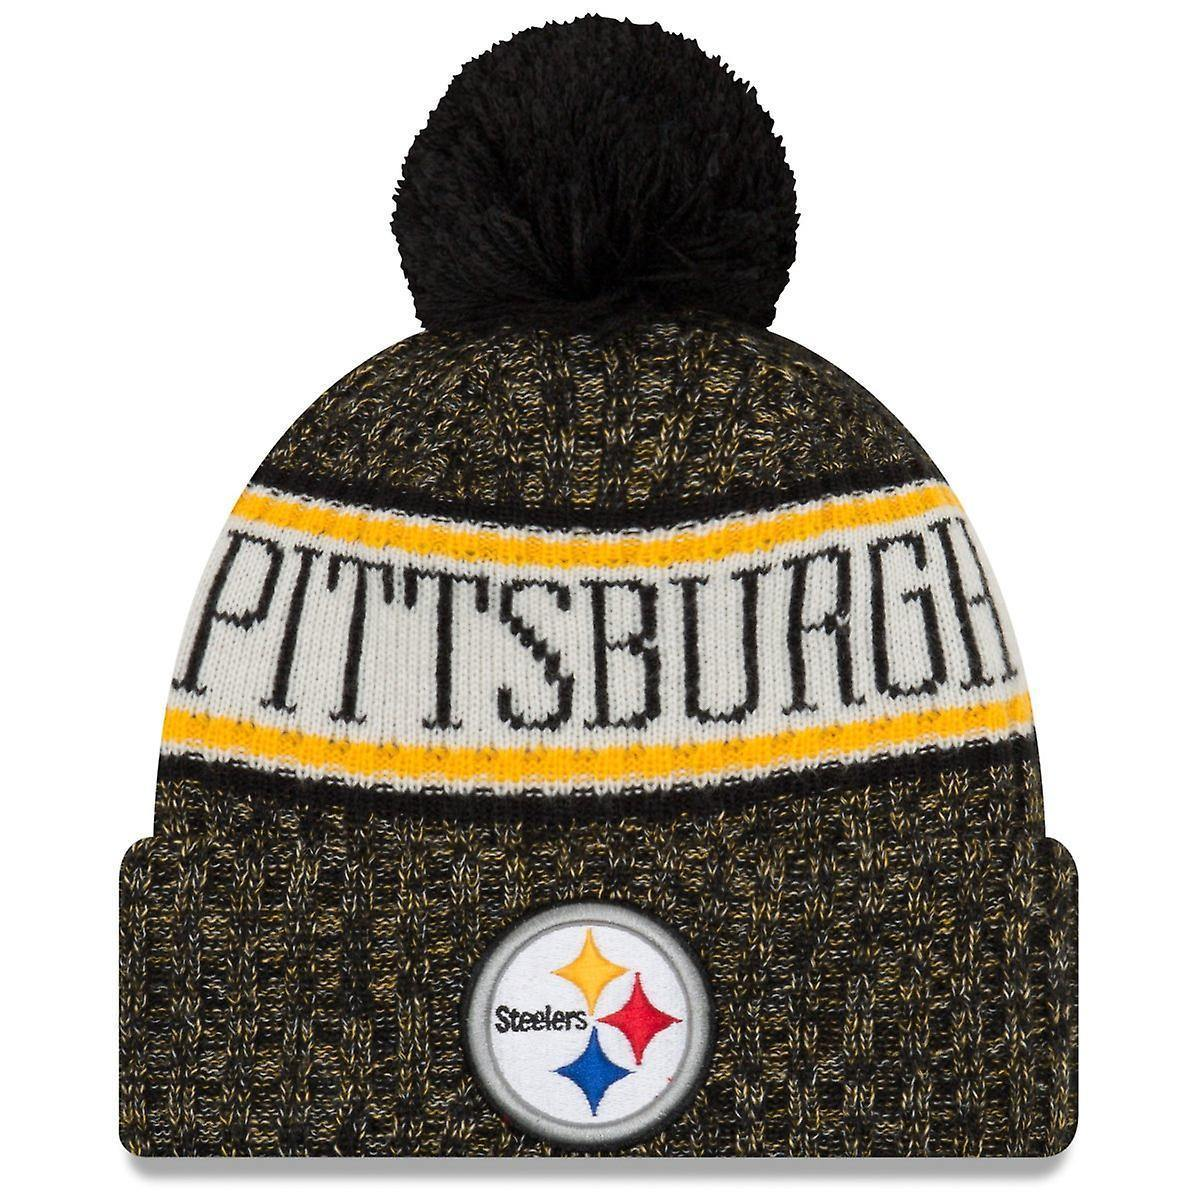 New Era - NFL knit / tuque Steelers.